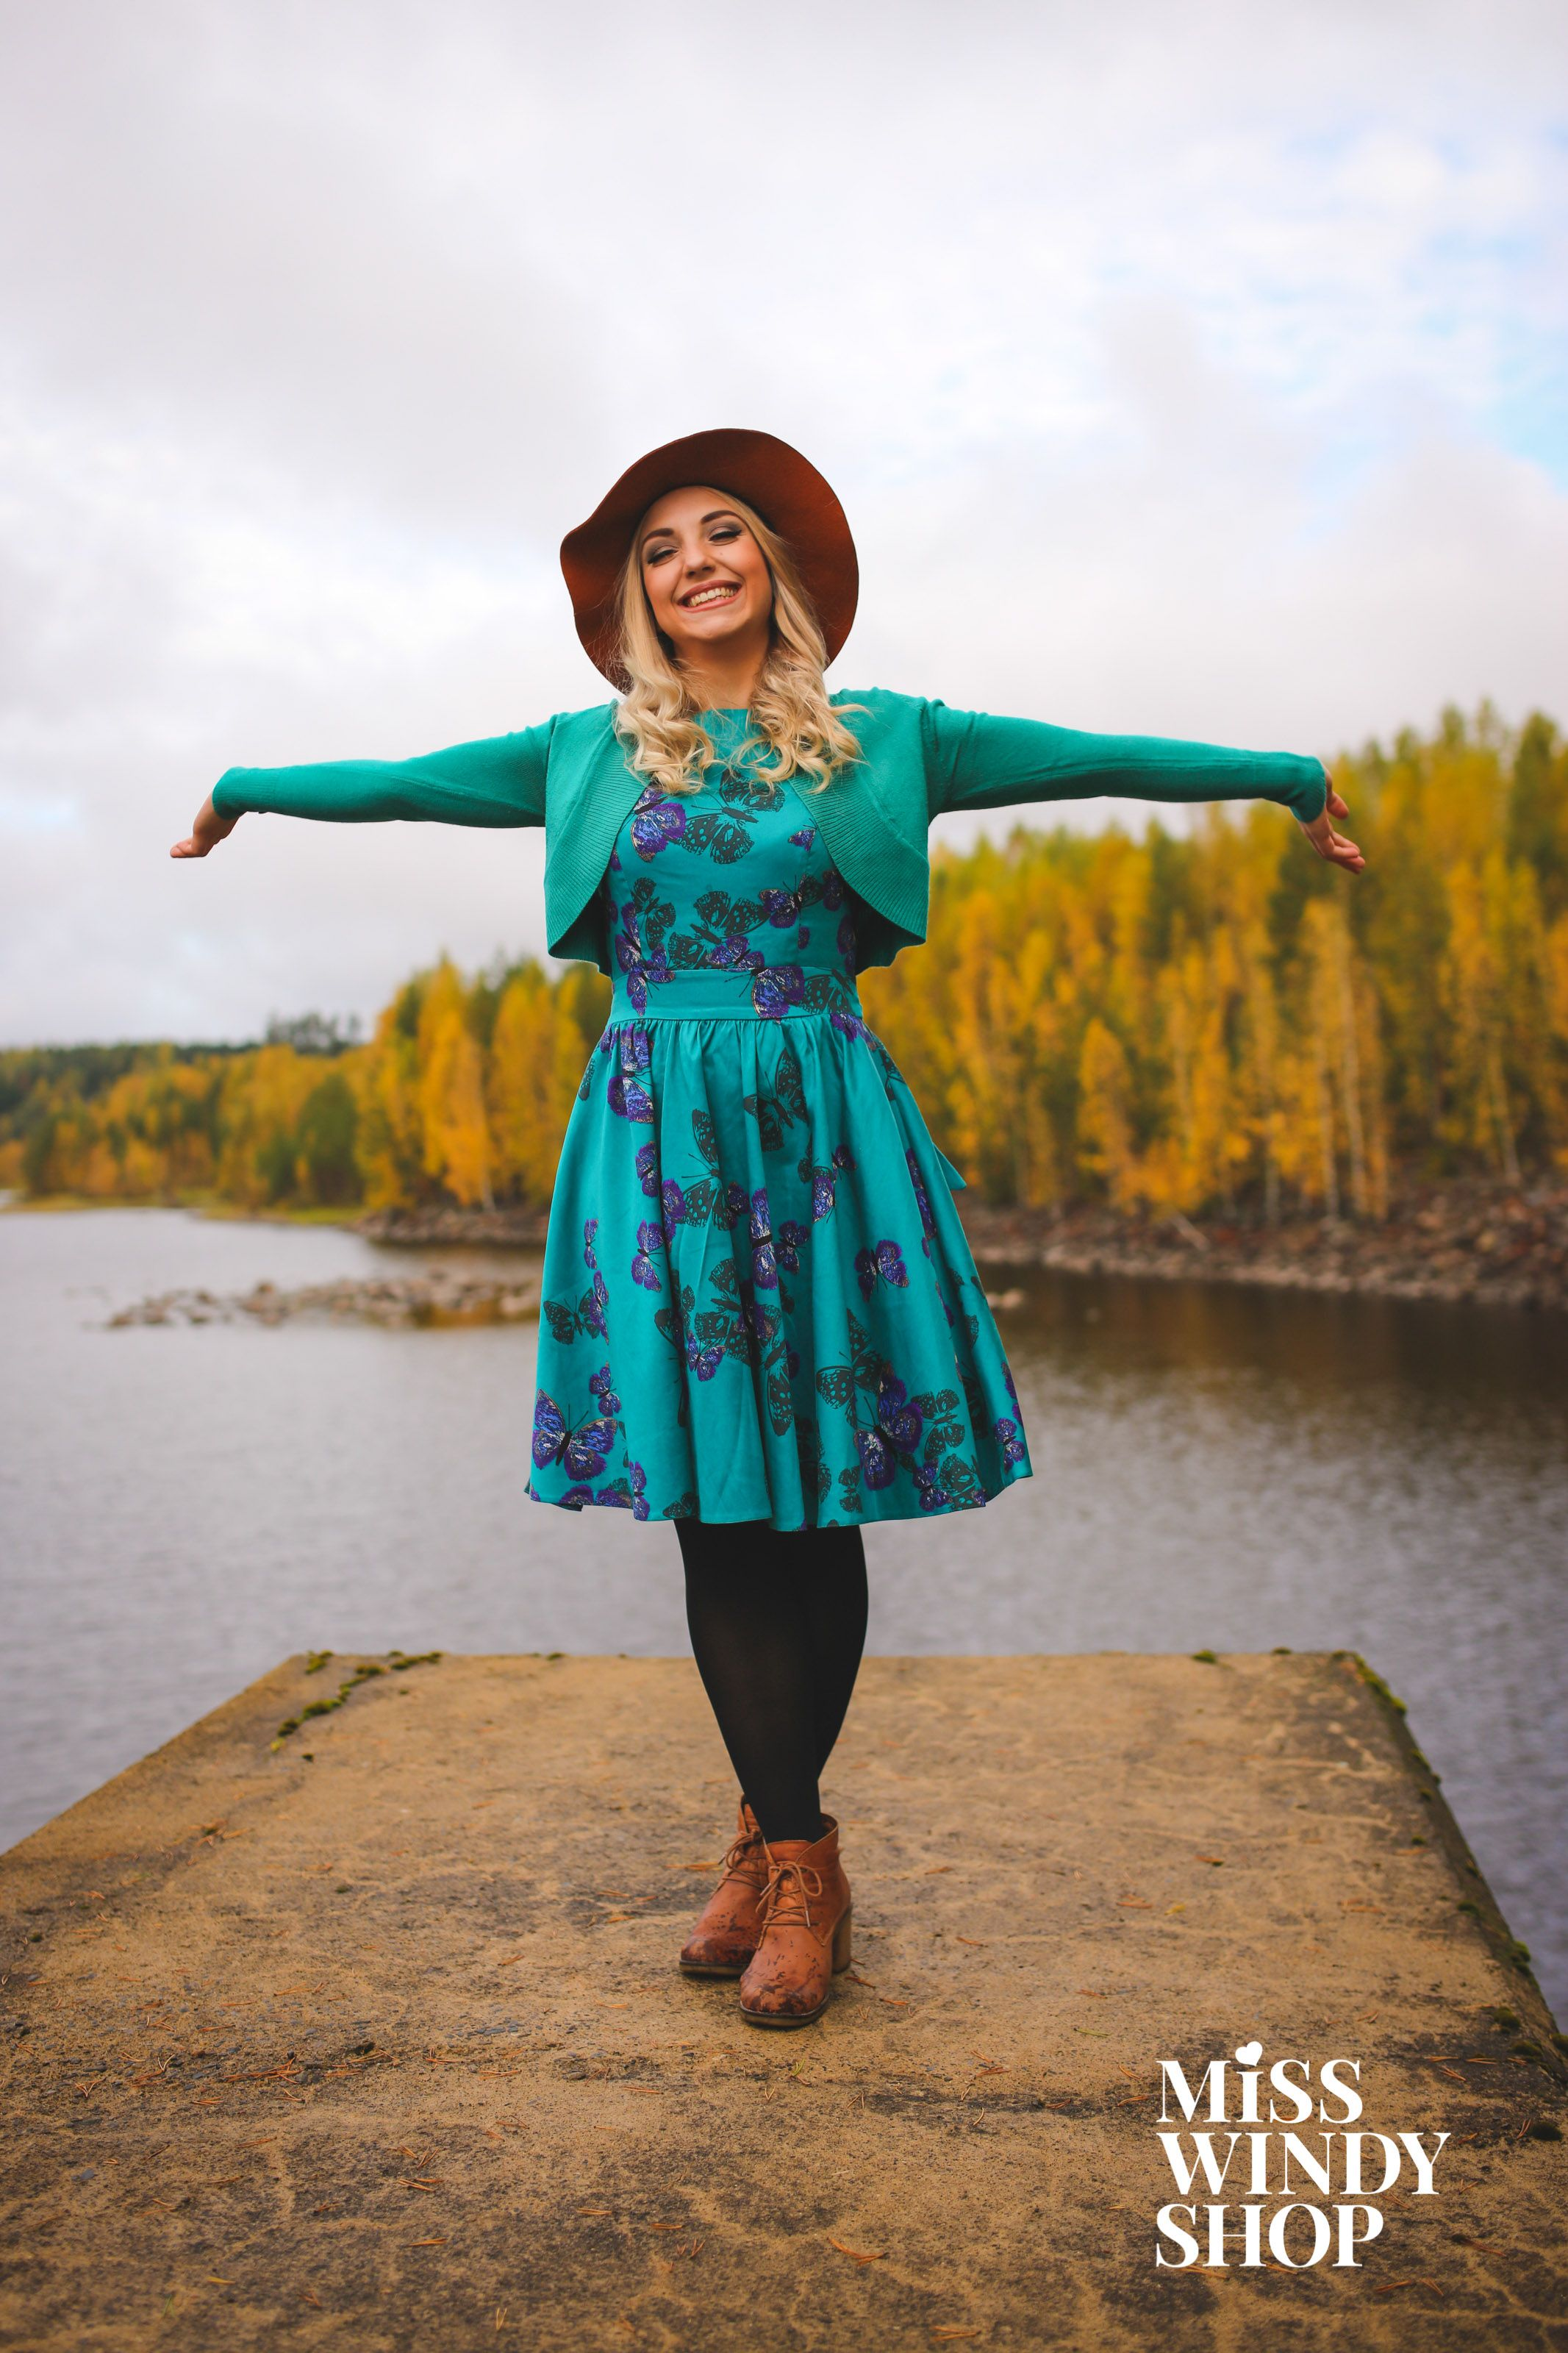 Welcome, autumn! (c) misswindyshop.com #autumn #dress #adventurer #shrug #teal #butterfly #hat #blonde #dressrevolution #mekkovallankumous